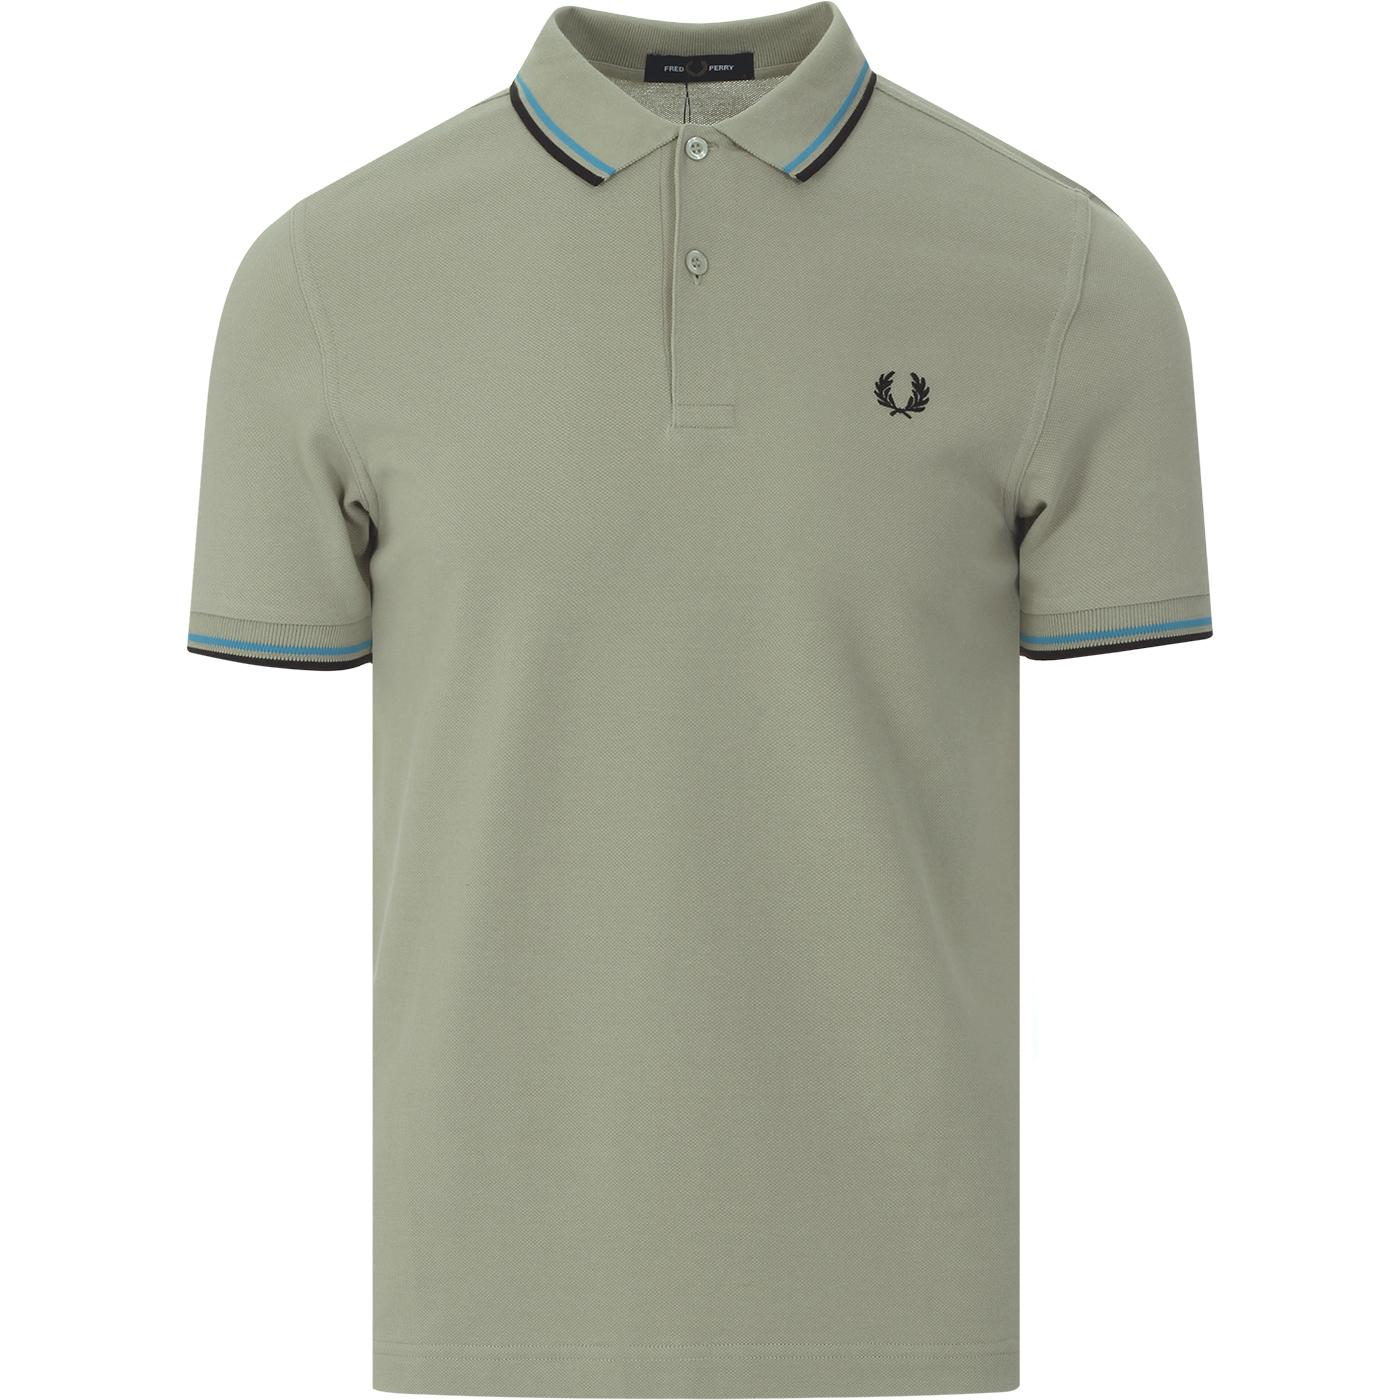 FRED PERRY M3600 Mod Twin Tipped Polo Shirt (Sage)